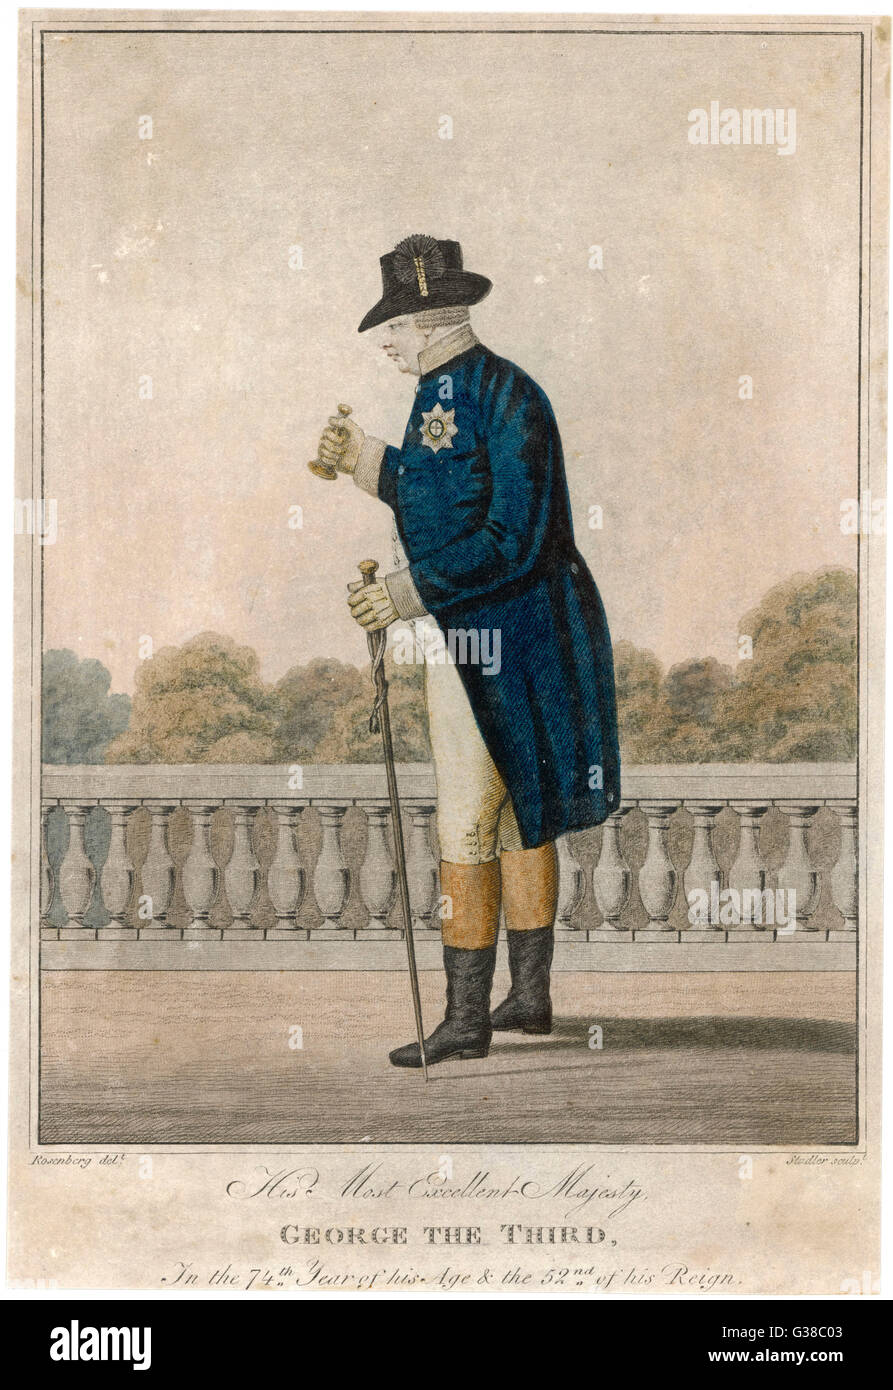 GEORGE III OF ENGLAND  His Most Excellent Majesty  George The Third, In the 74th  Year of his Age & the - Stock Image